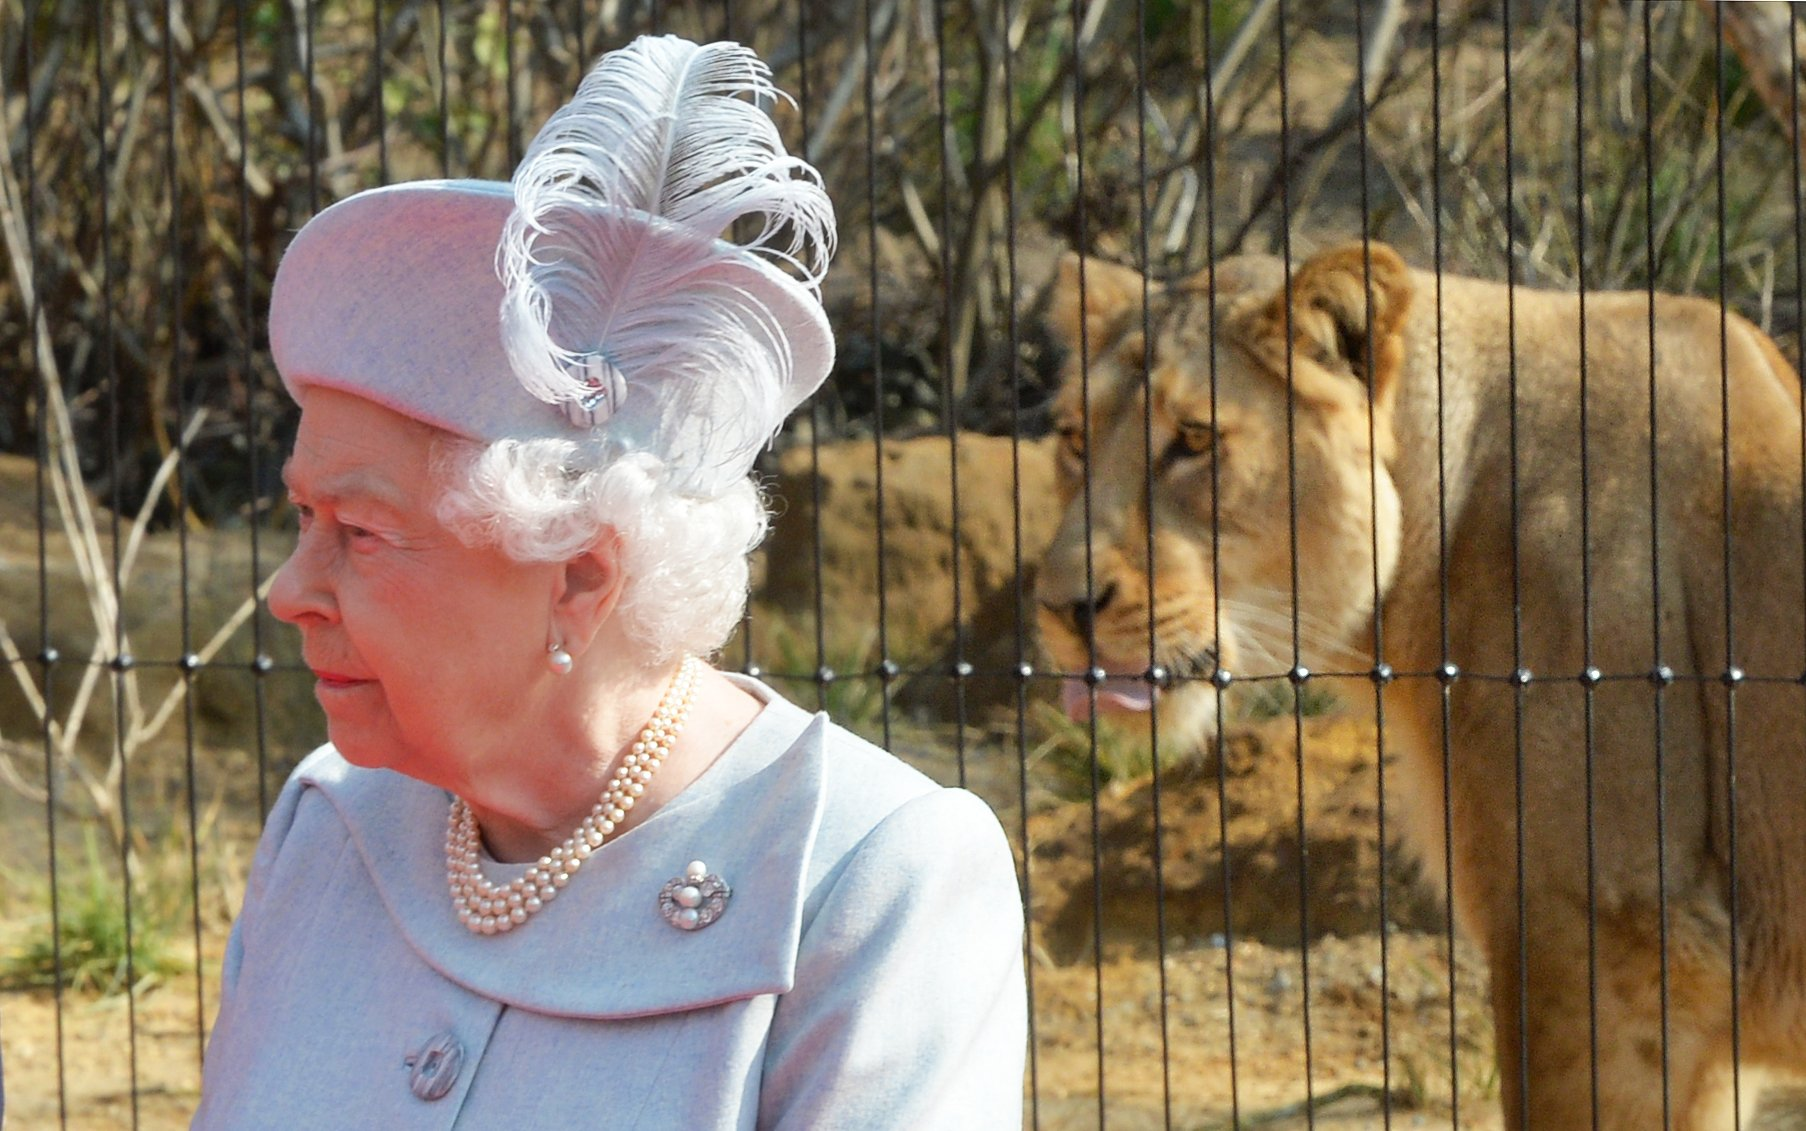 Lion plots to eat the Queen and overthrow the monarchy